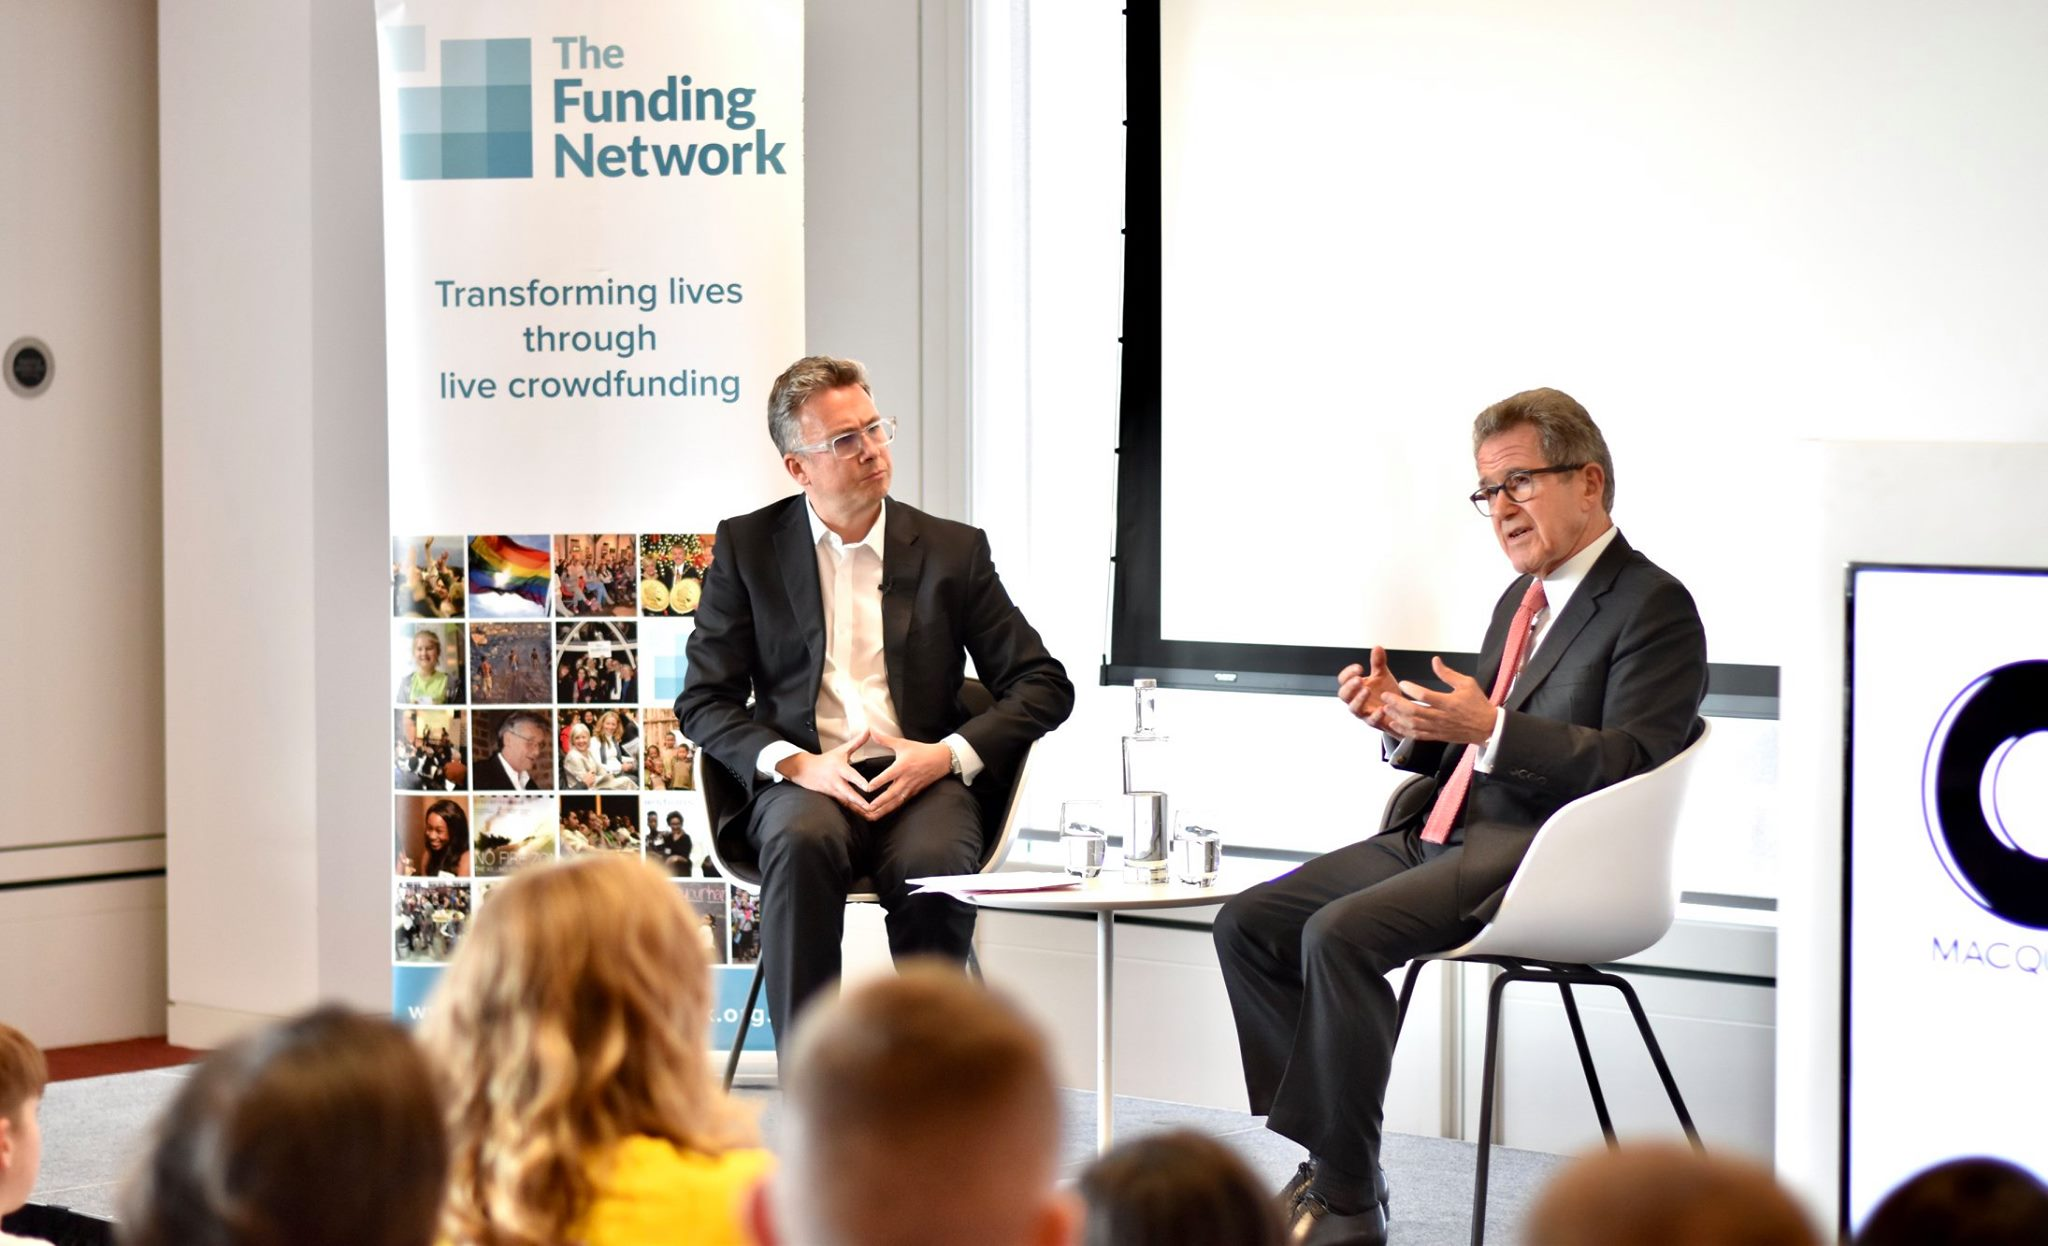 Iain Anderson and Lord John Browne fireside chat